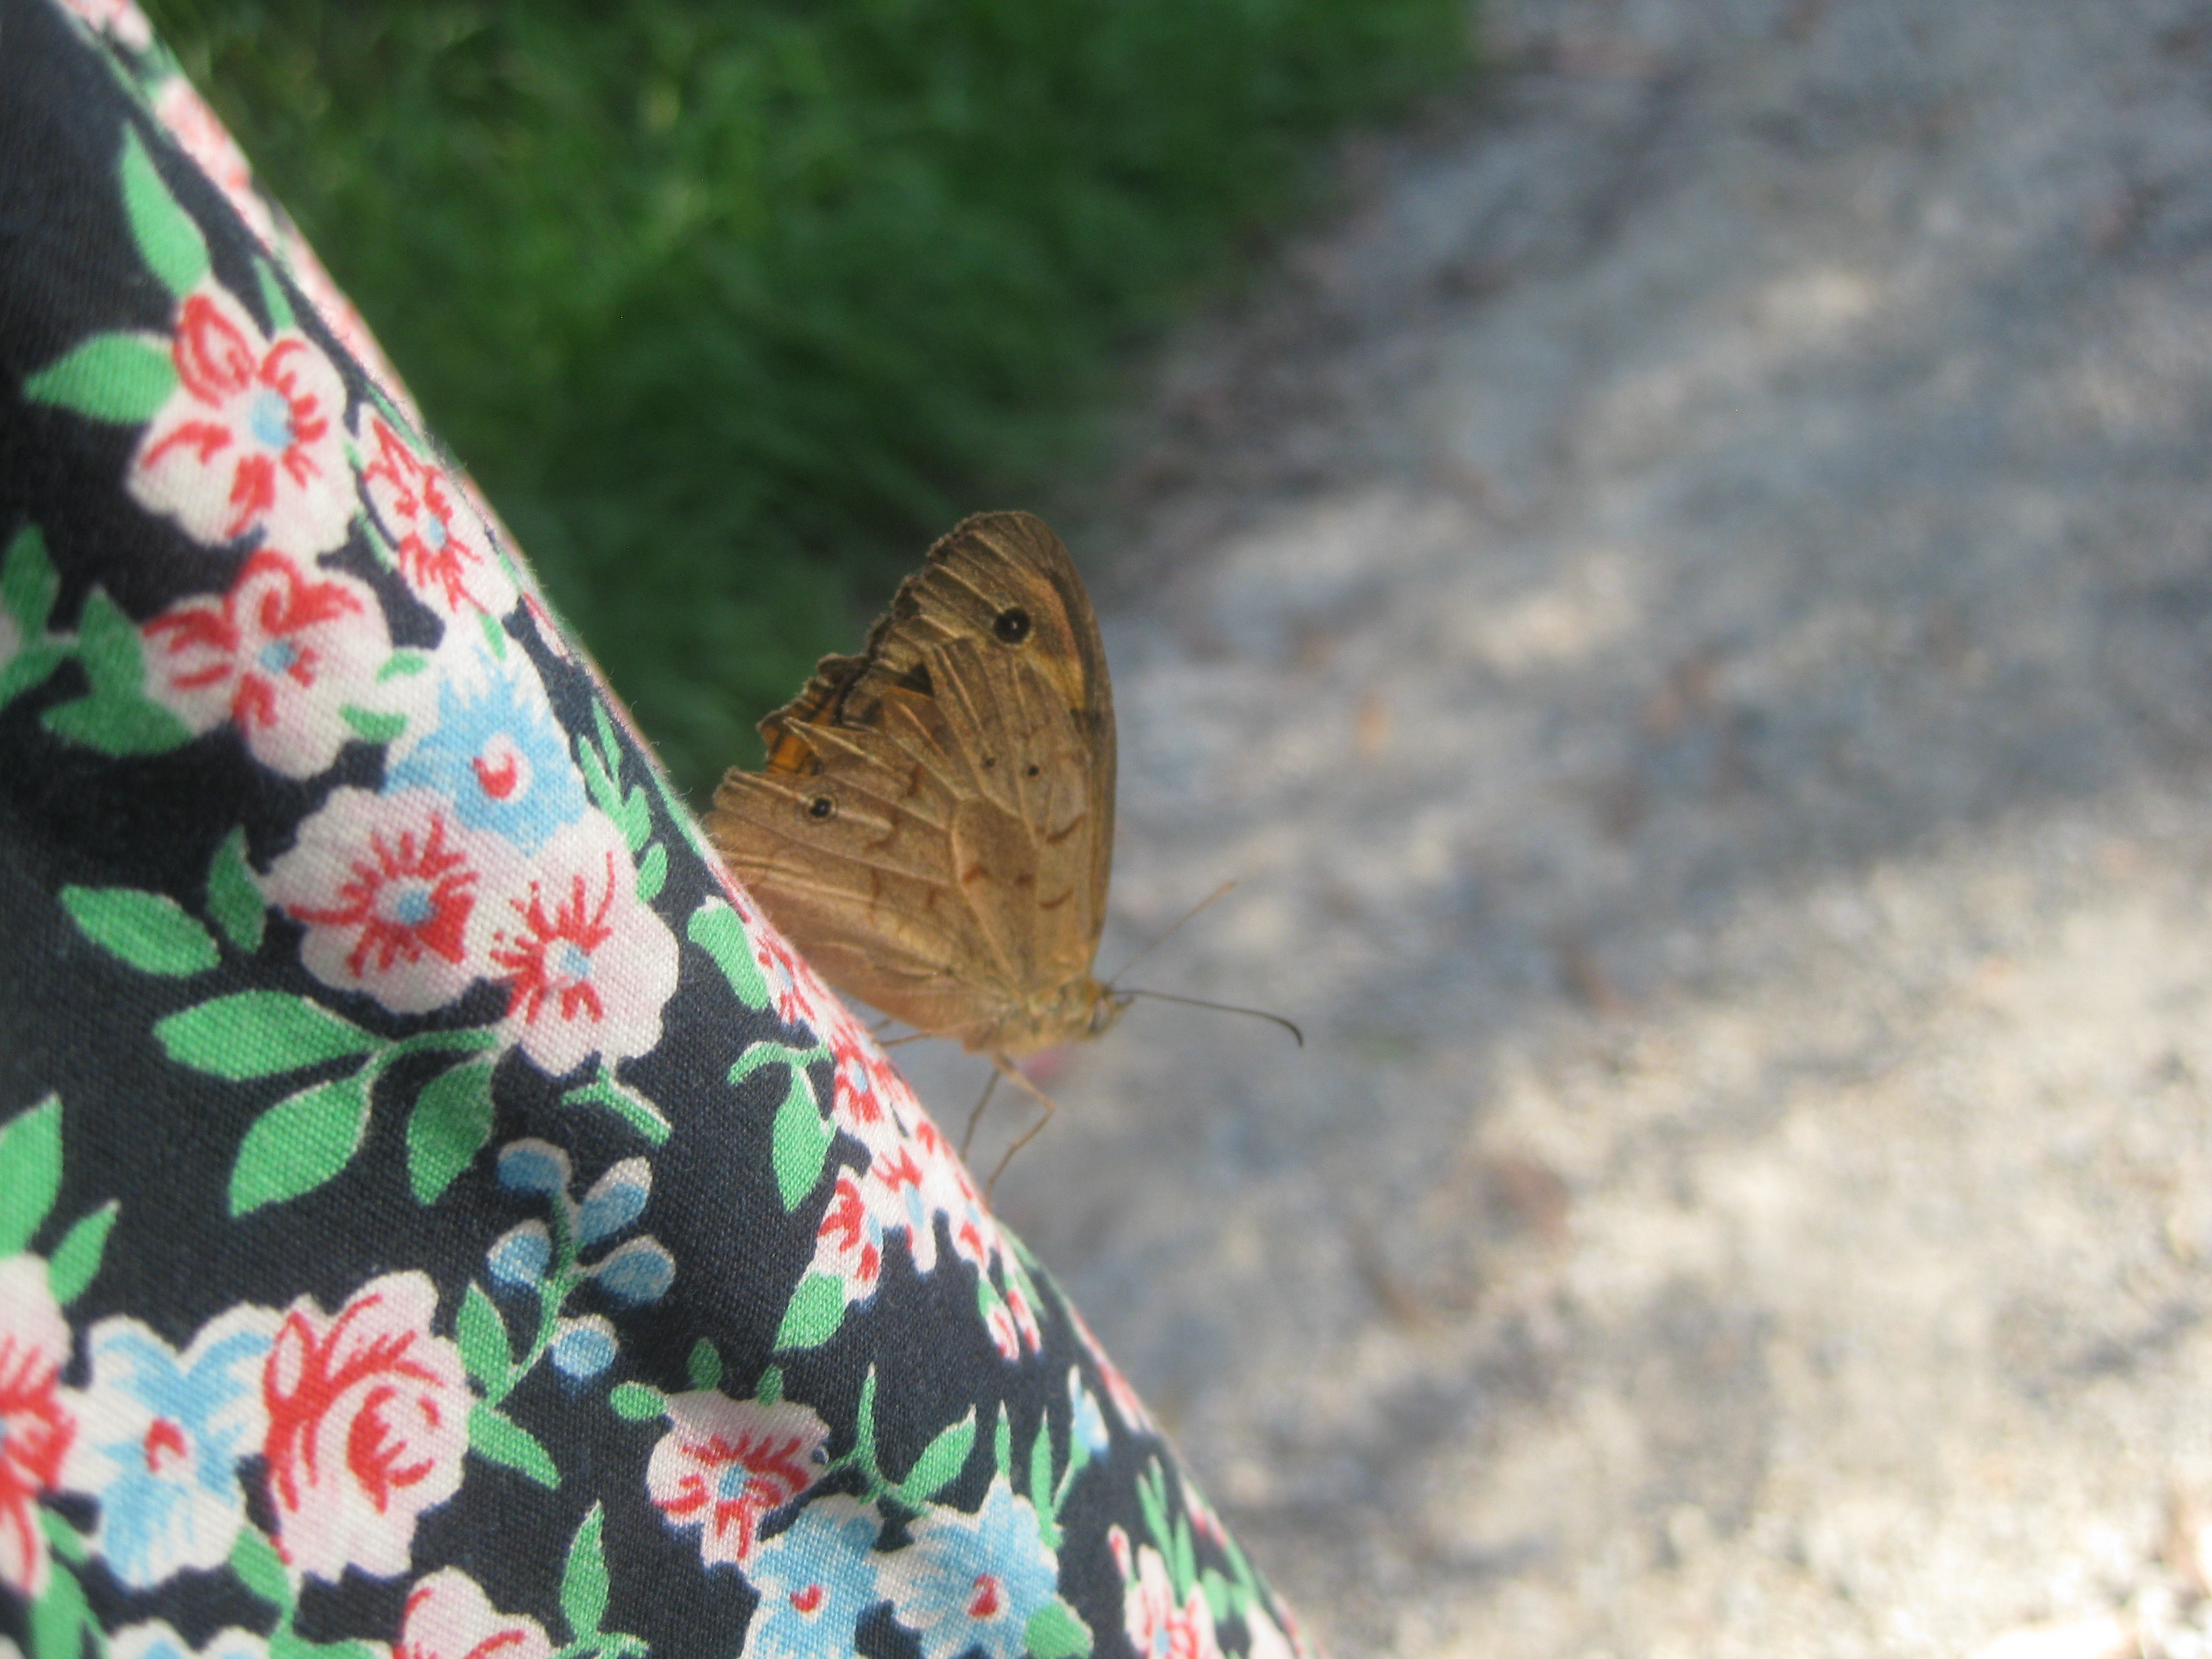 brown butterfly lands on floral dress